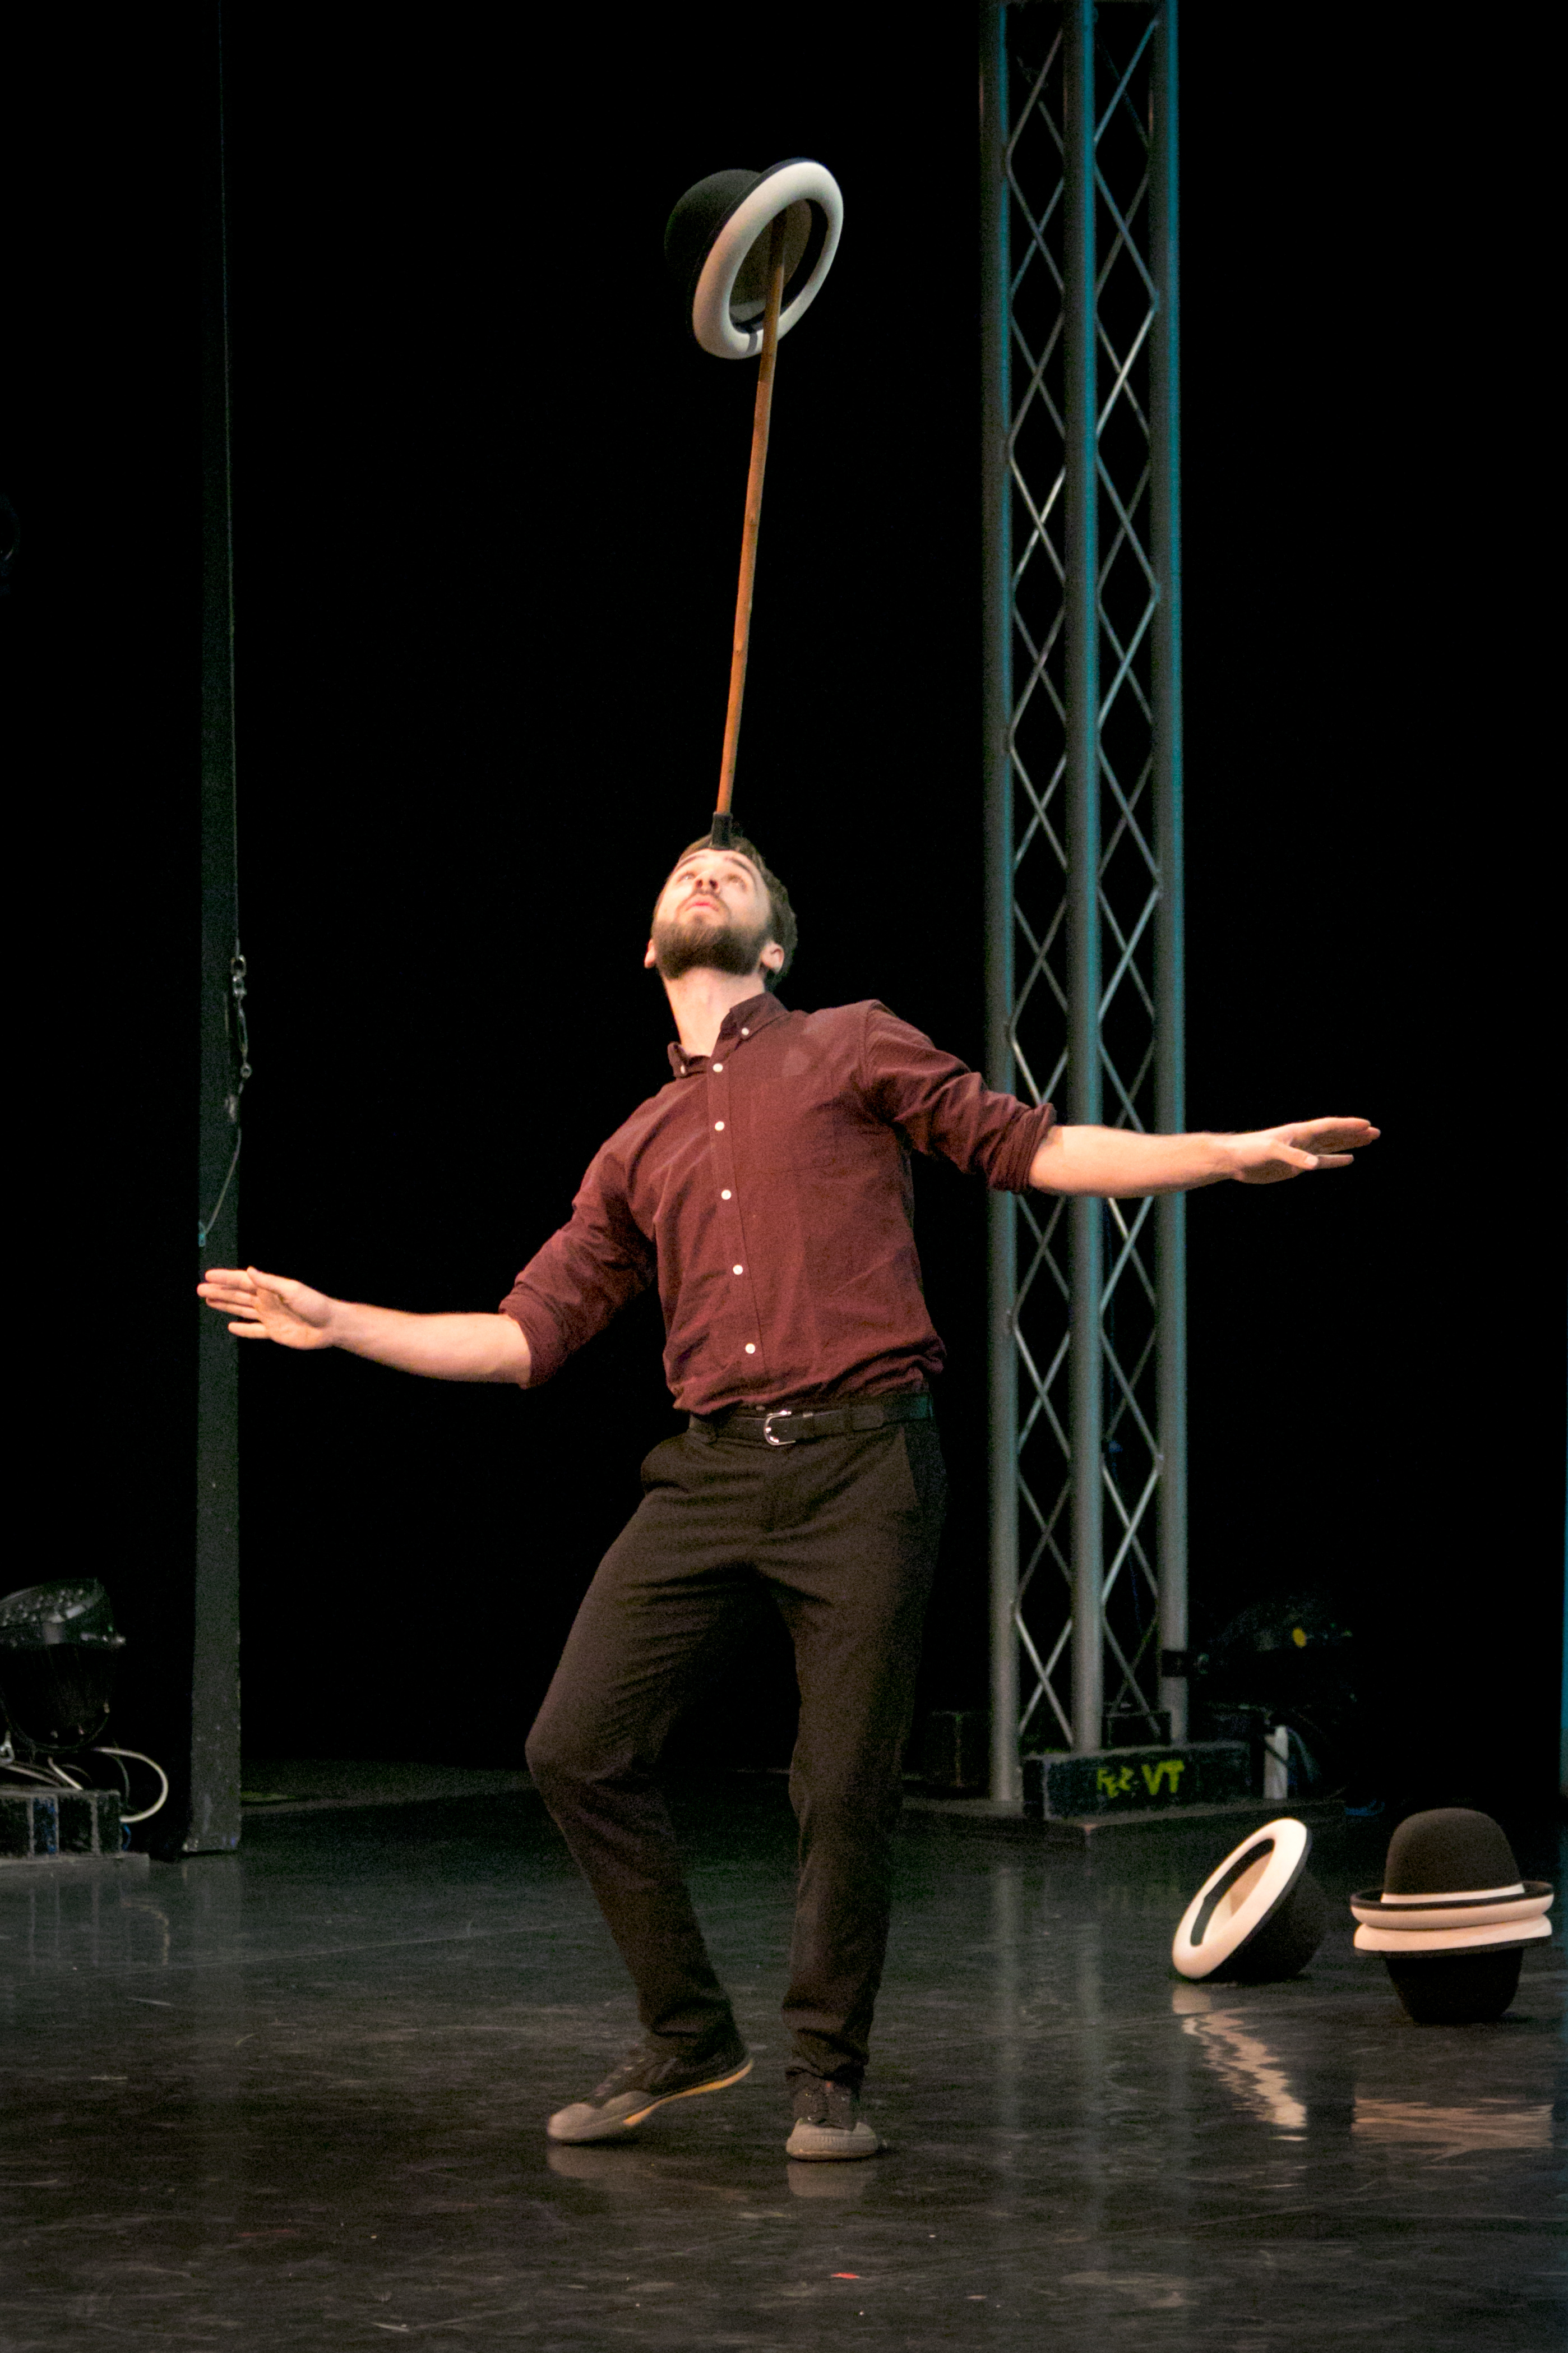 Berlin Juggling Convention 2017 Gala Show: no description.